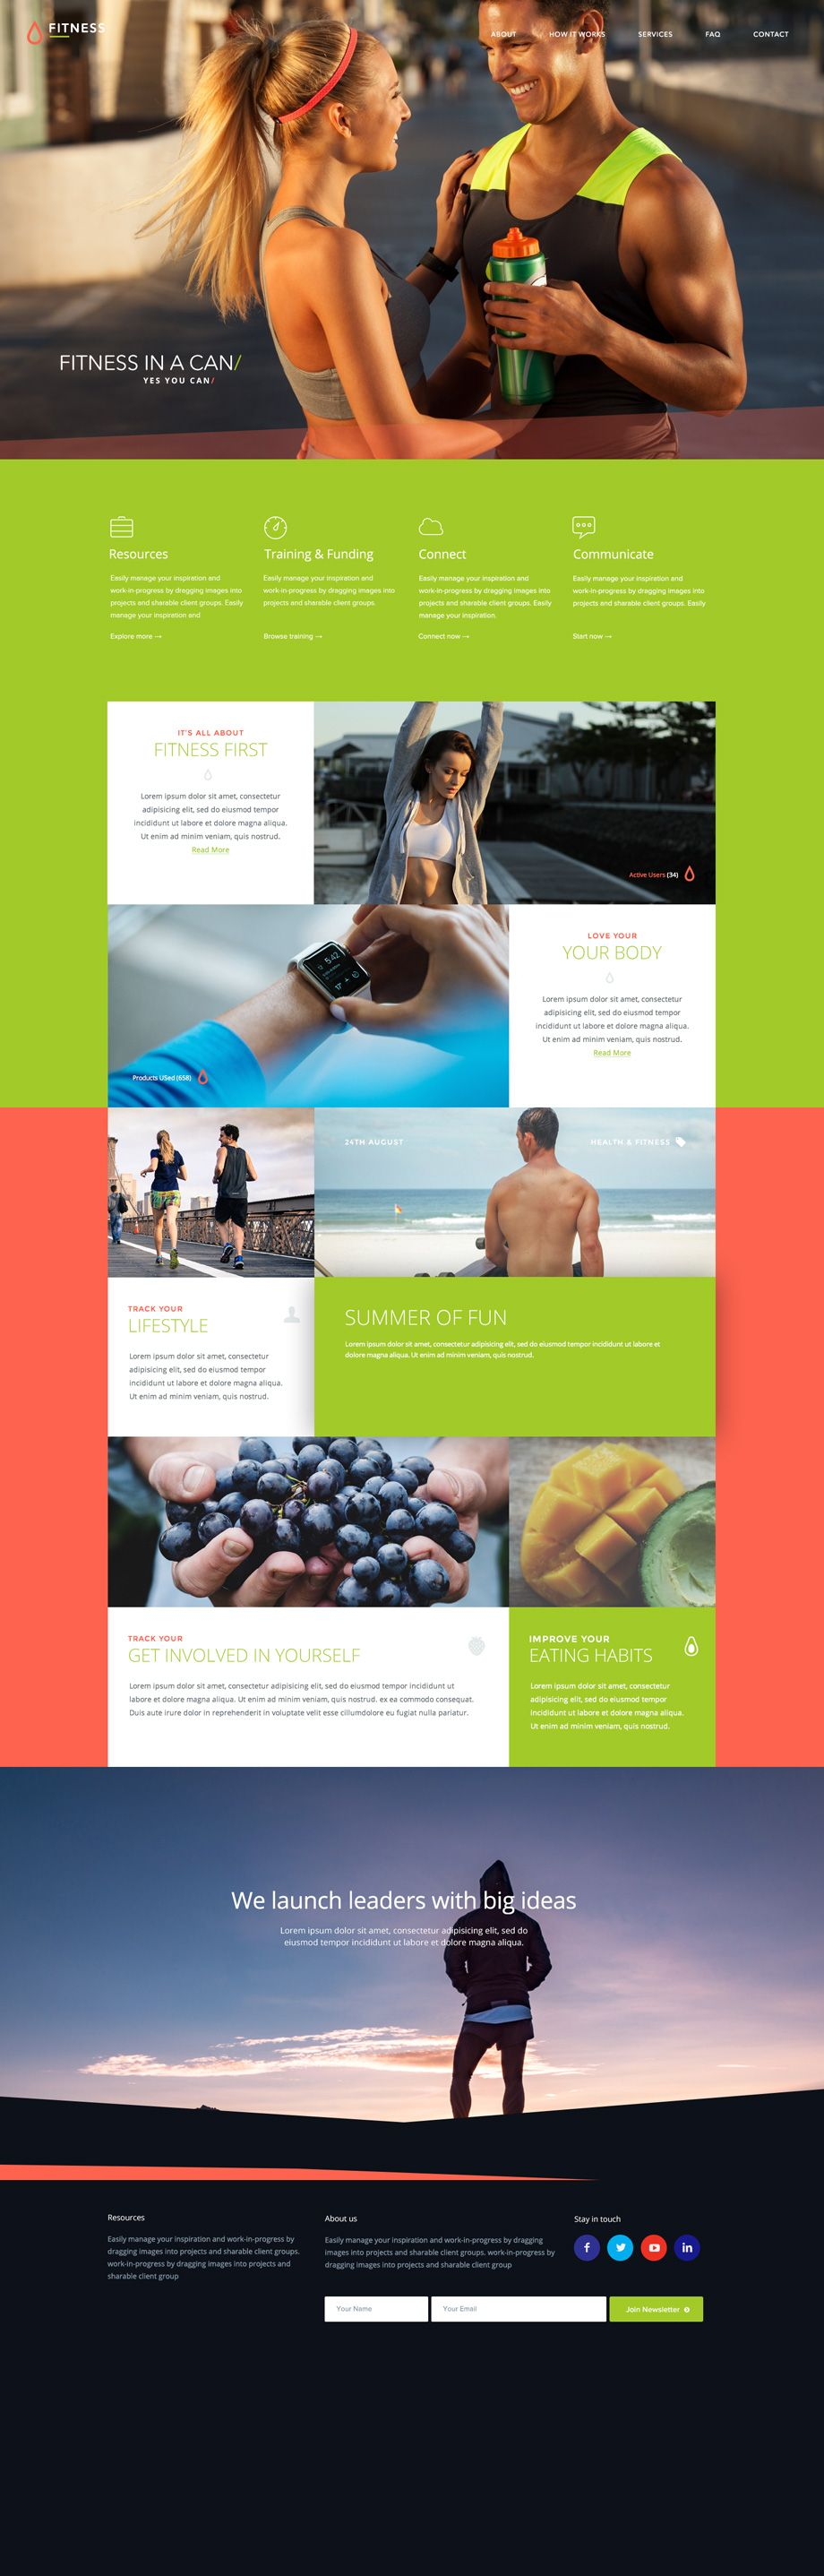 ⬇ Free download: Fitness free Photoshop PSD template | Web Design ...